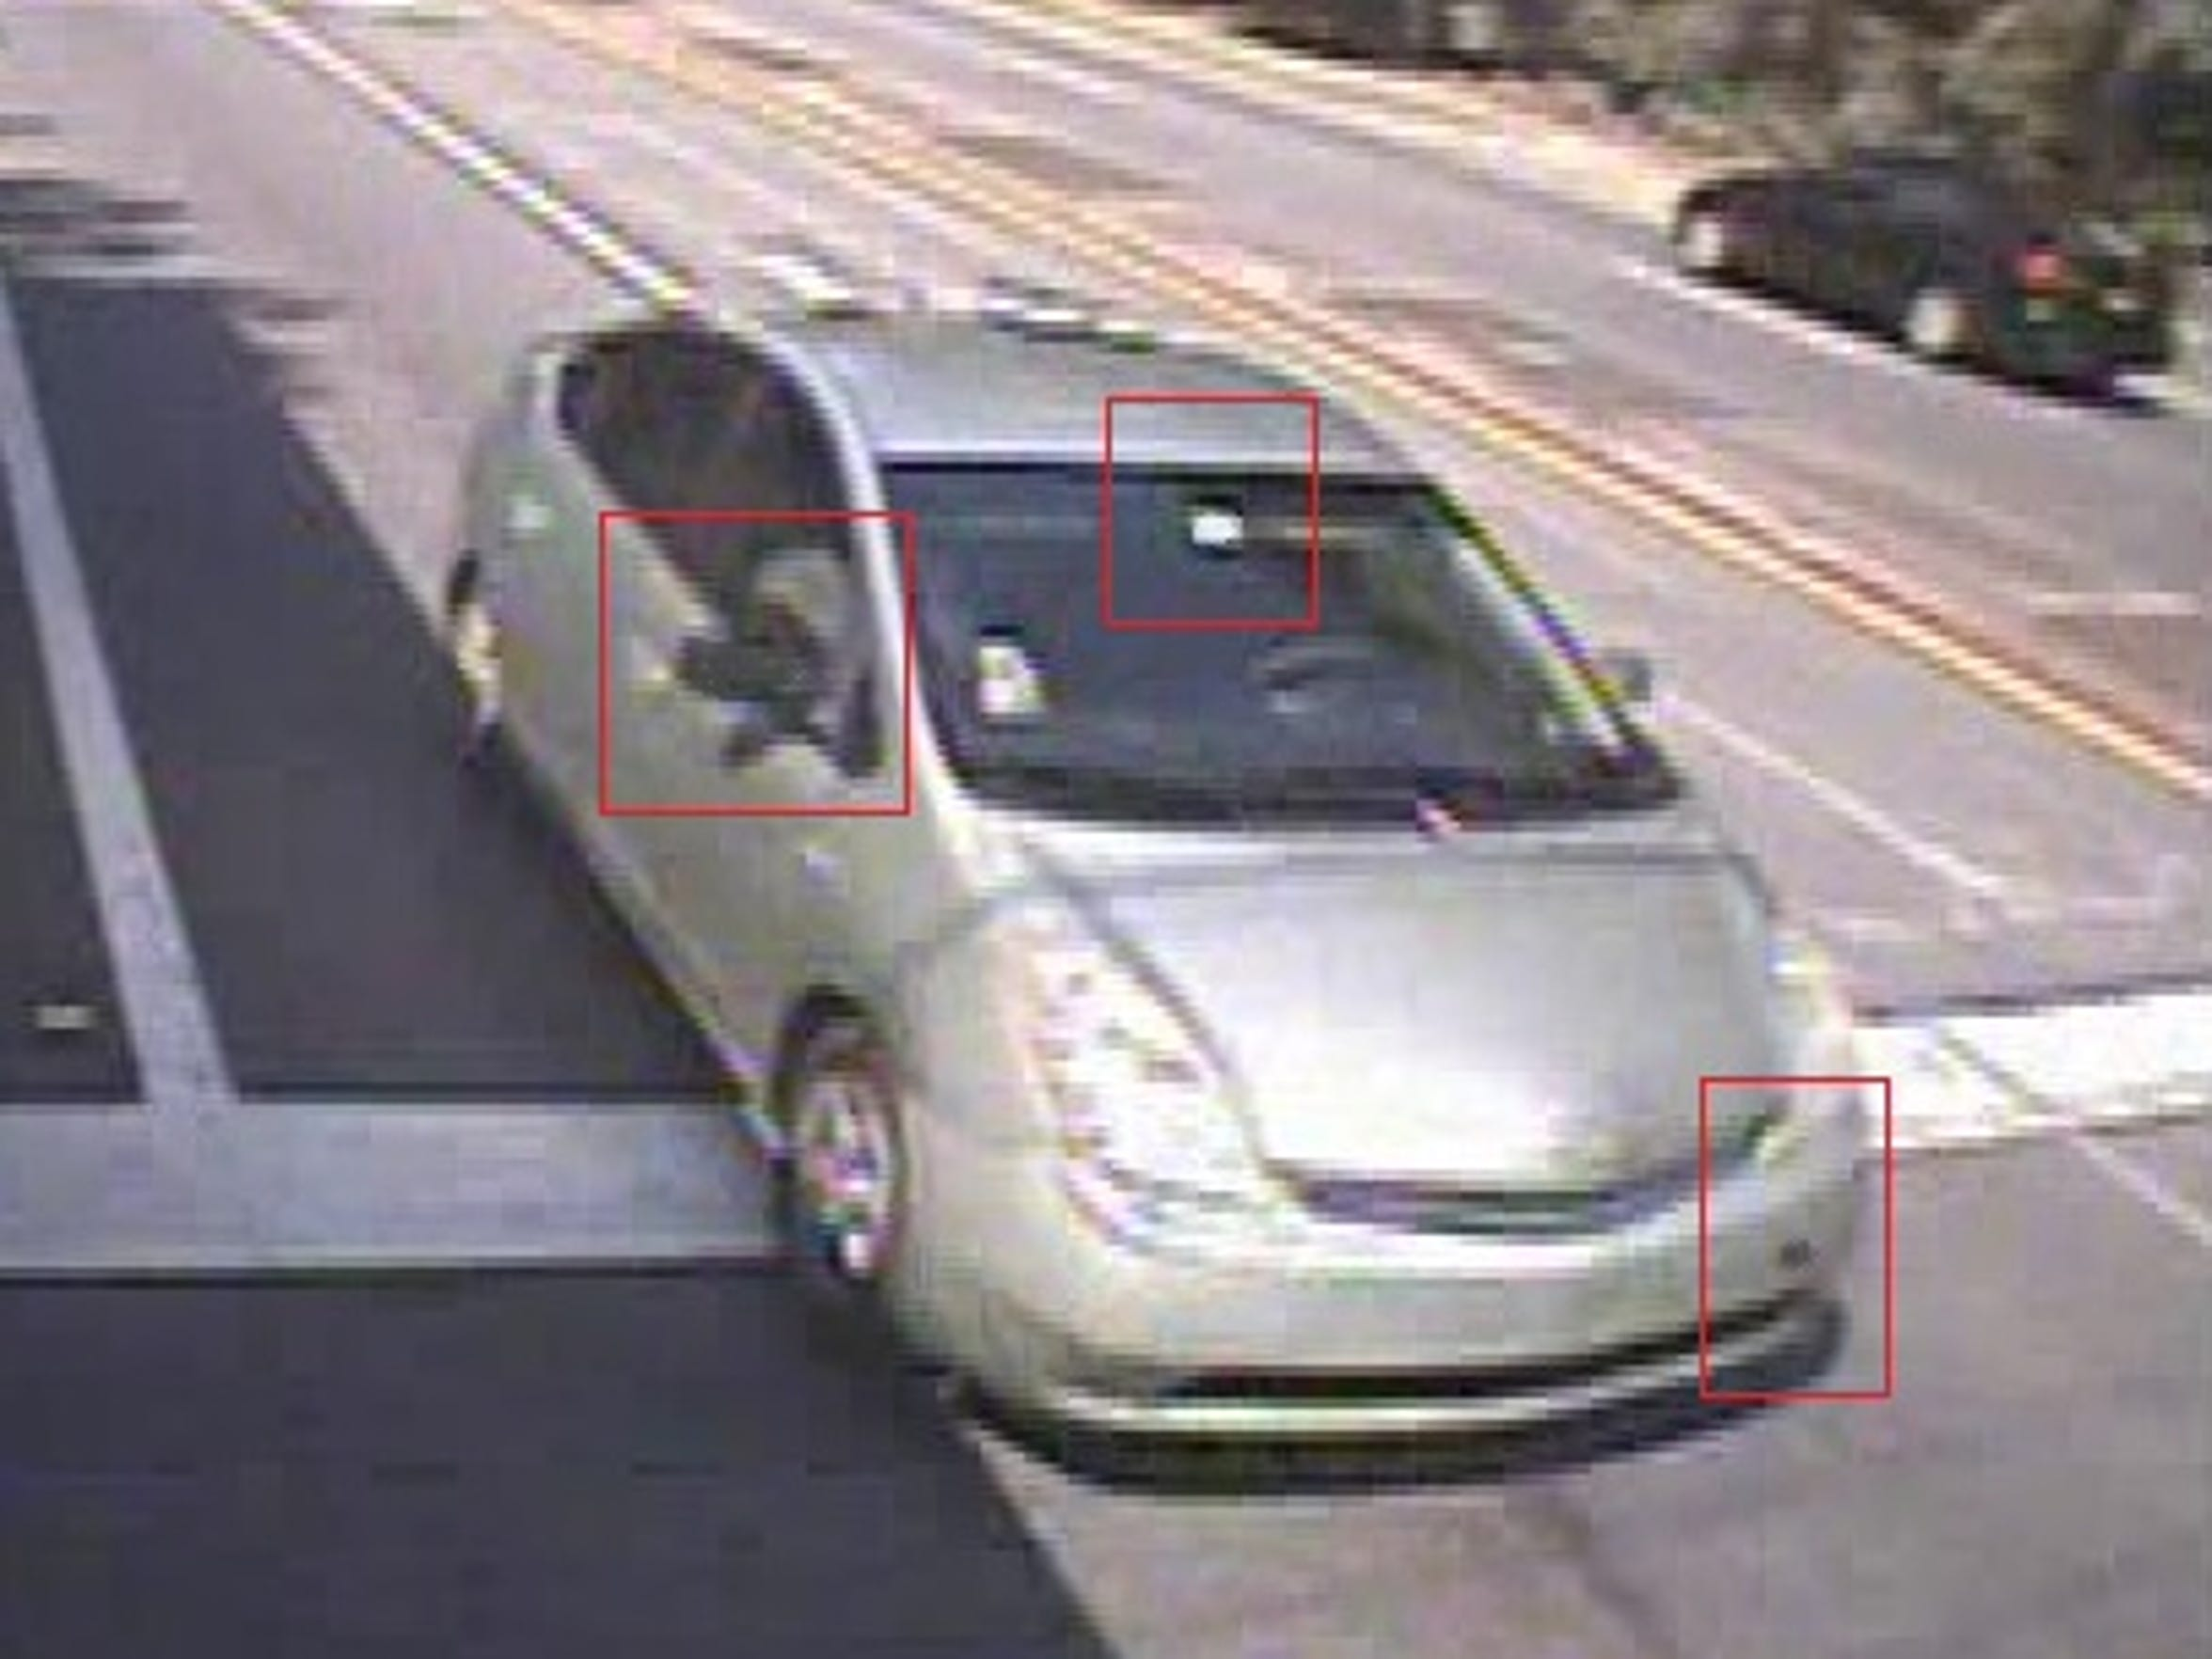 TPD officials say surveillance photos show the 2006-2009